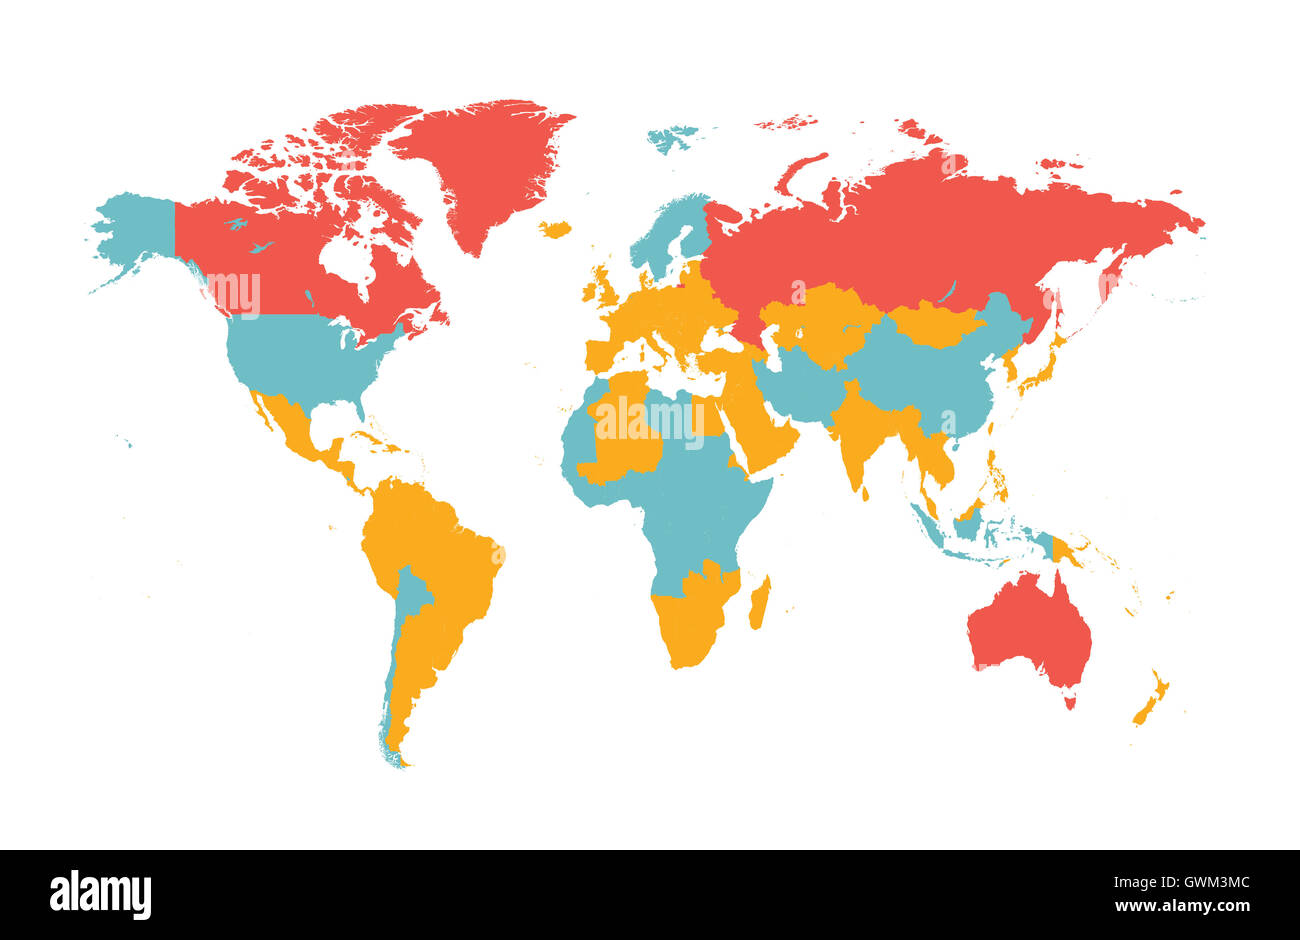 Flat World Map Vector.World Map Vector Flat With Countries Stock Photo 119070572 Alamy